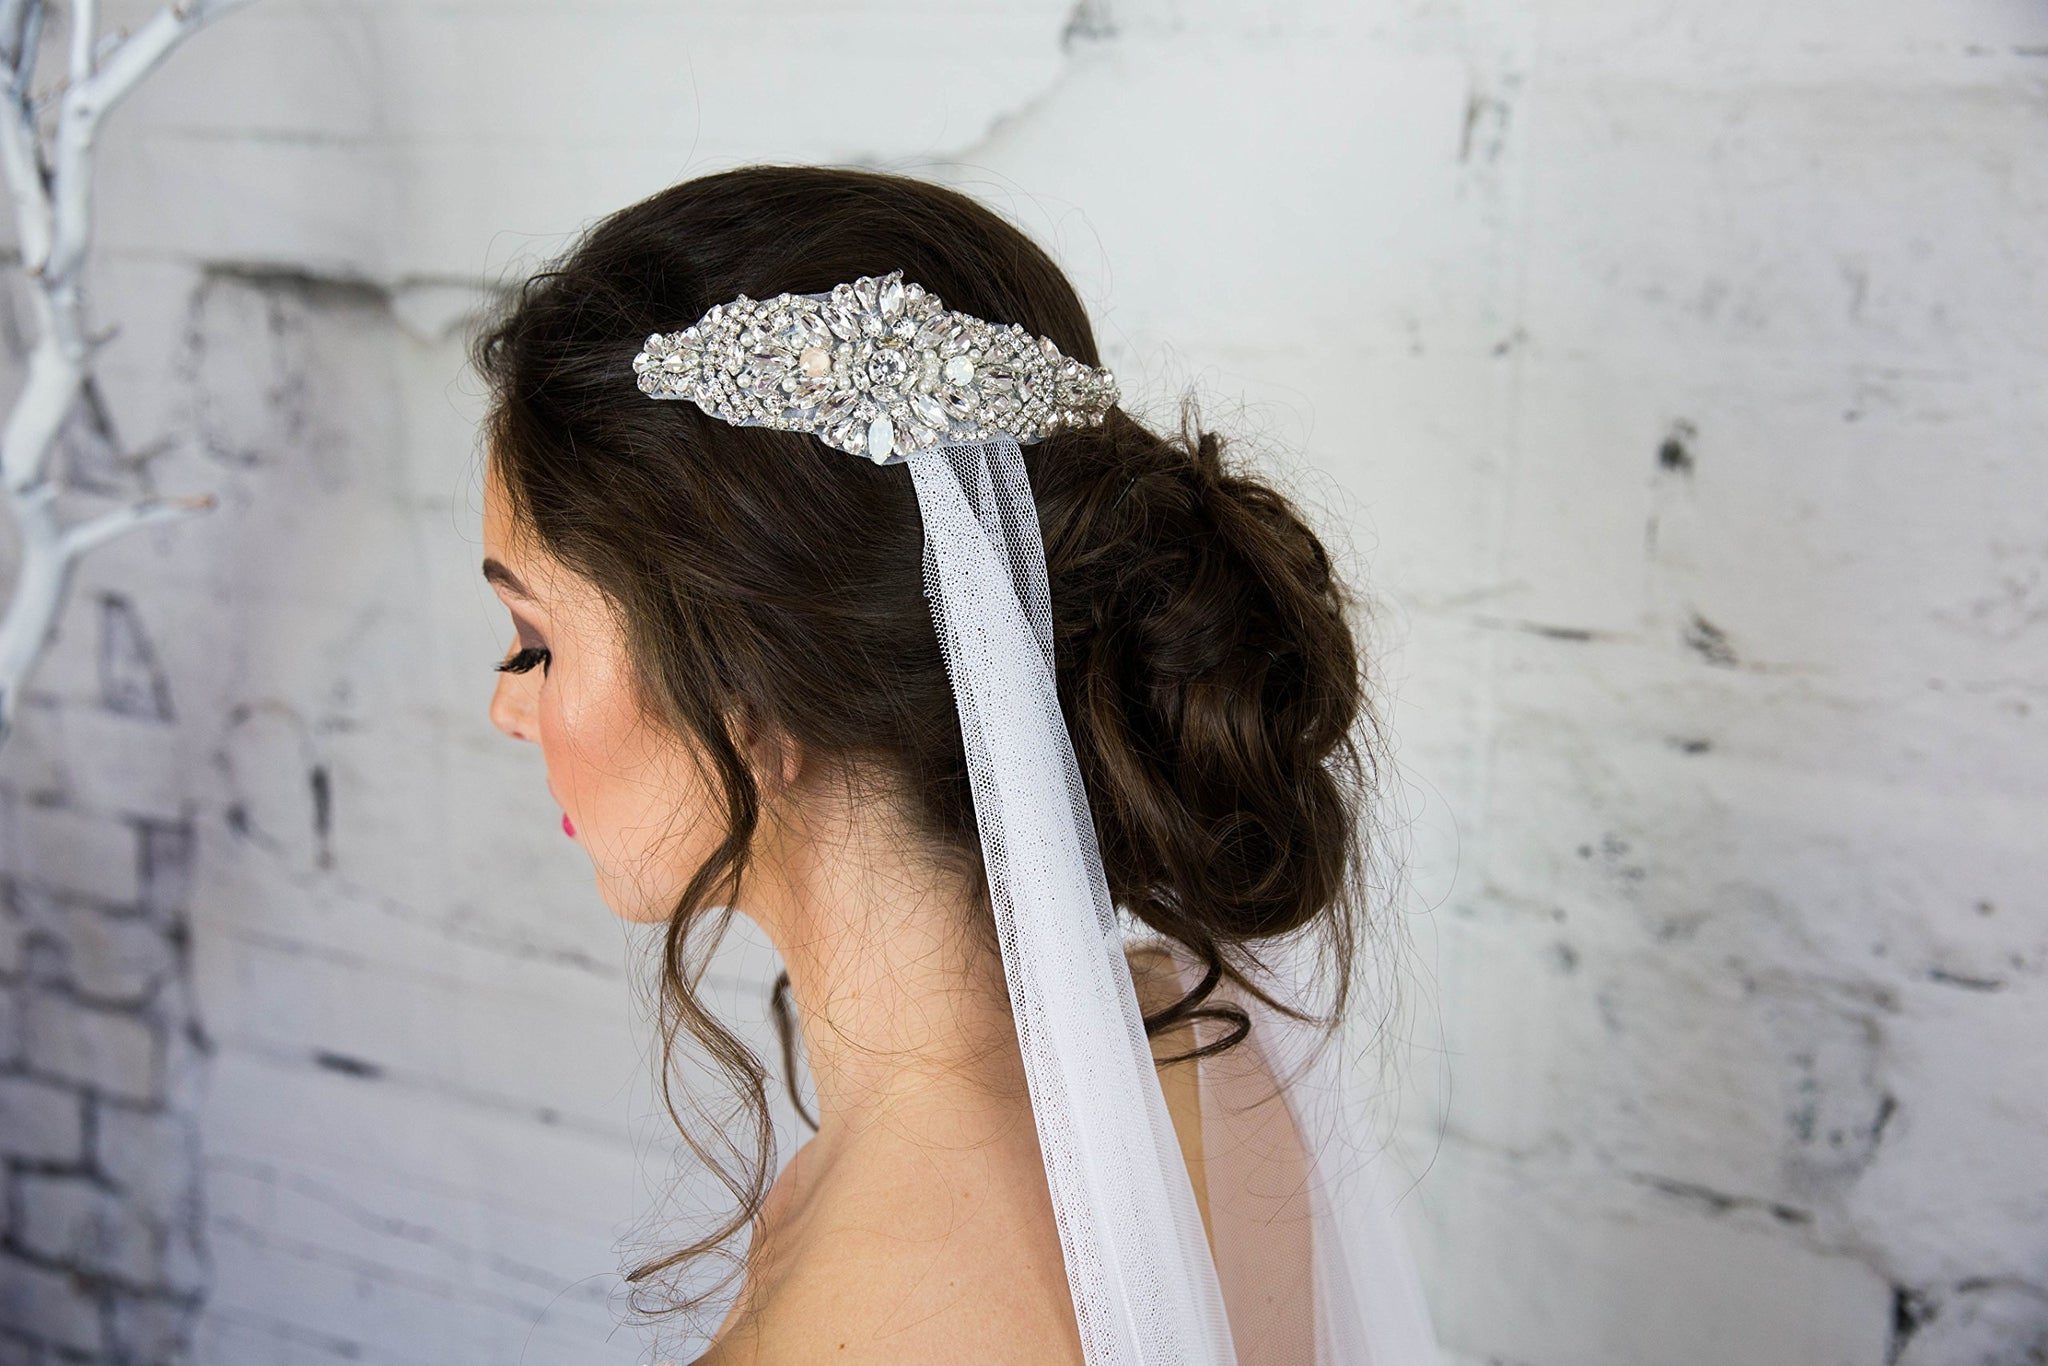 Crystal Bridal Headband, Swarovski Headpiece, White Head Chain, Hair Comb for the Bride, Boho Hair Jewelry, Statement, Headdress